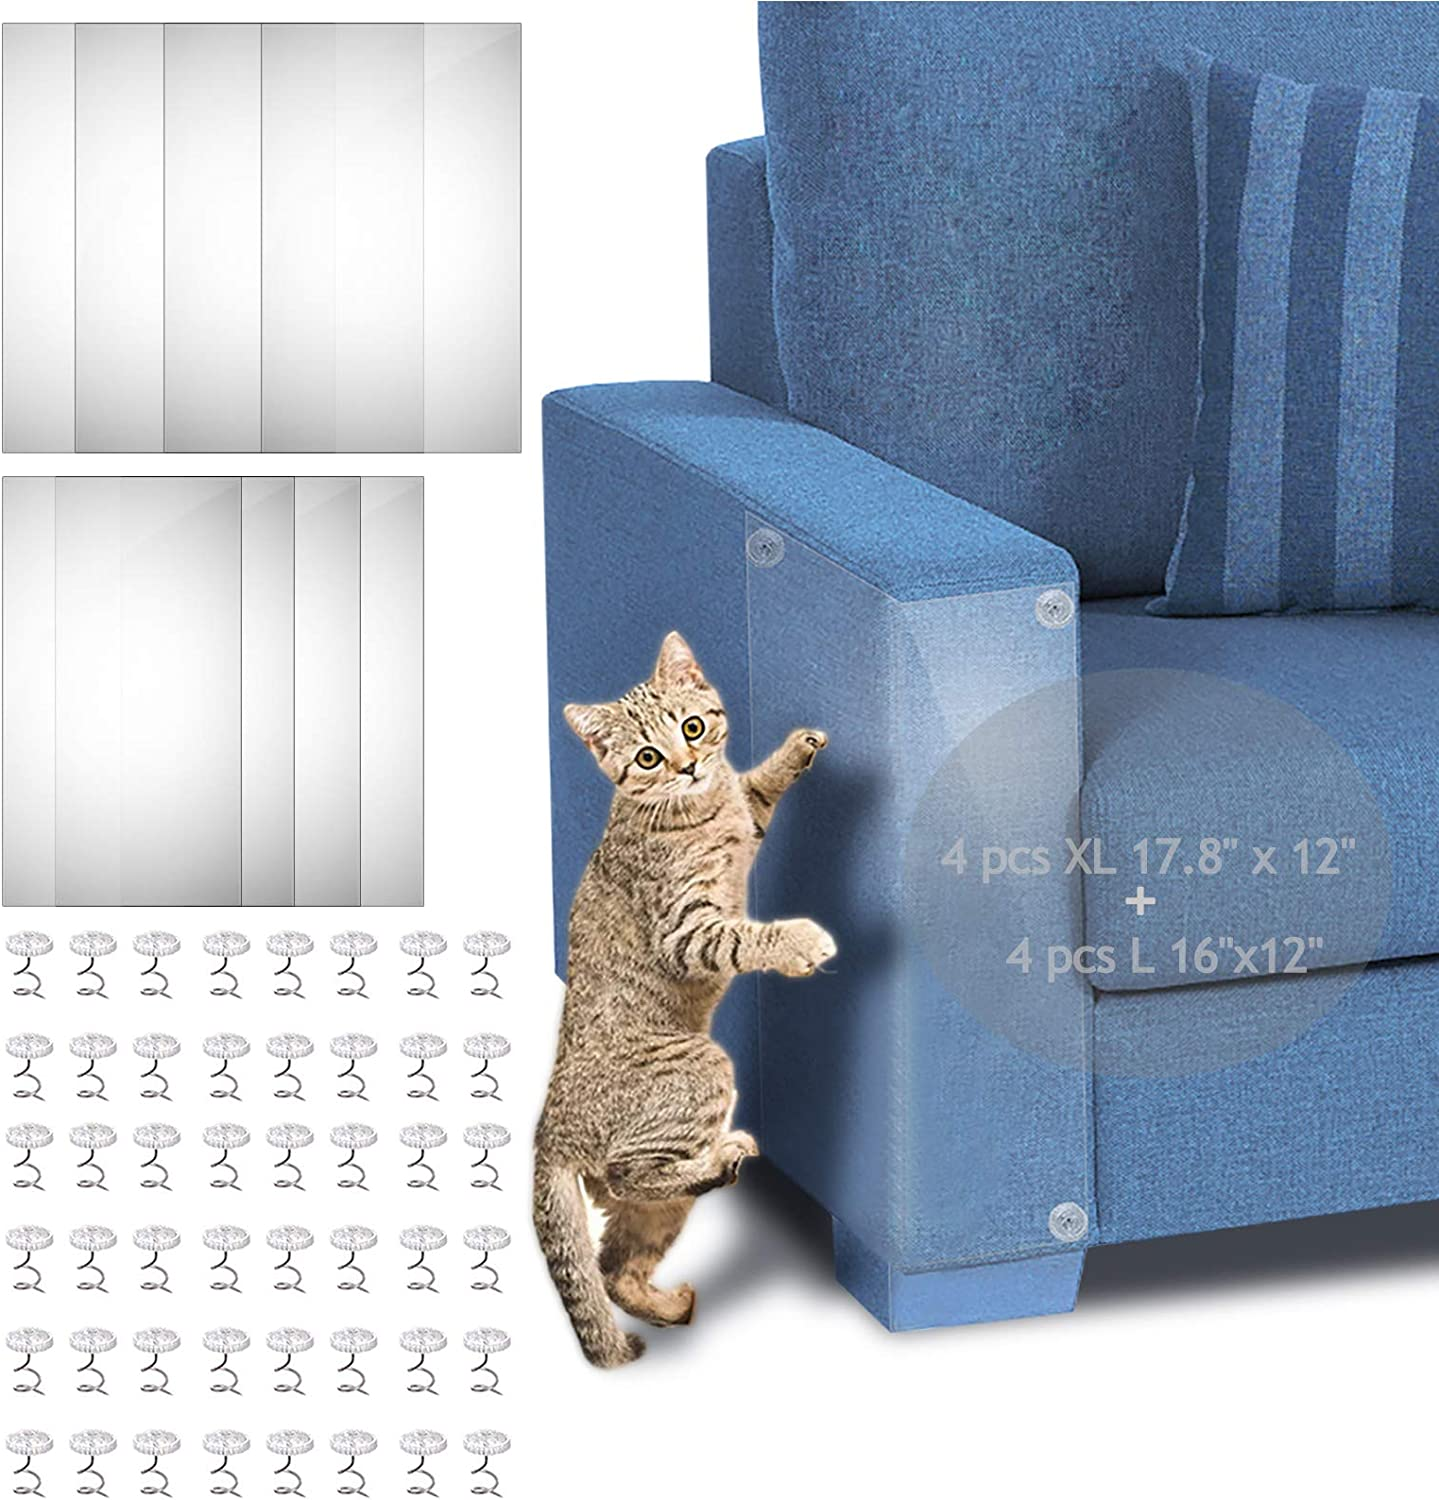 "Cat Furniture Protector, 4-Pack XL 17.8"" x 12""+ 4-Pack L 16""x12"" Self-Adhesive Cat Scratch Furniture Protector with 48 Twist Pins, Furniture Protection from Cat Scratching to Protect Sofa, Door, Wall"